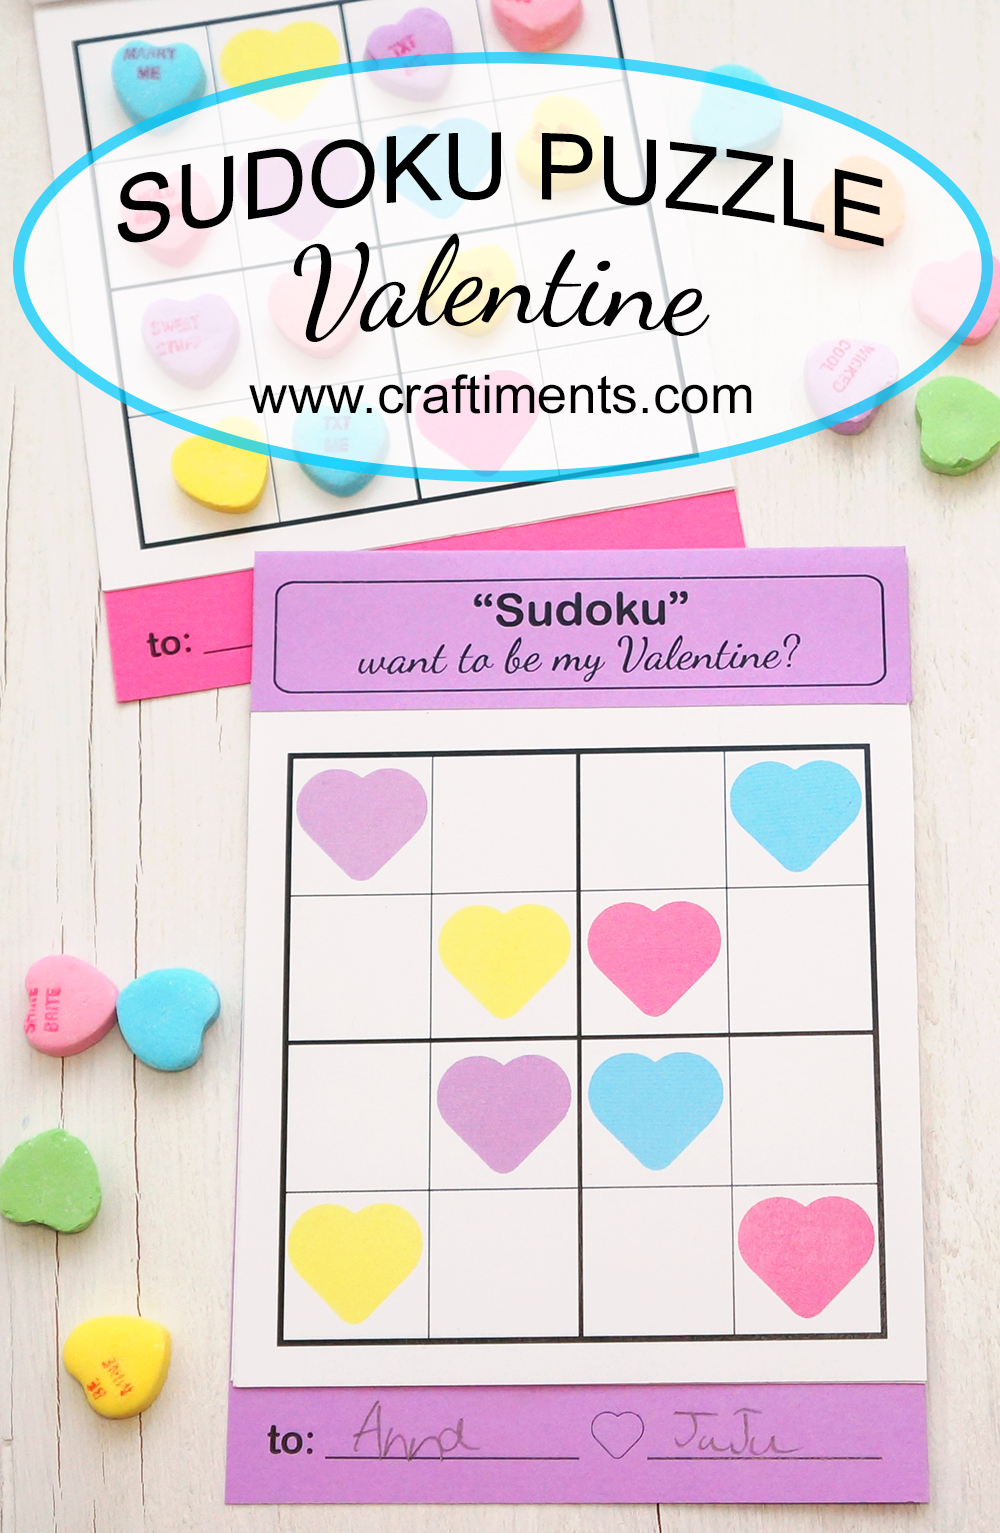 A unique Sudoku puzzle valentine for kids.  Includes printable templates and assembly instructions.